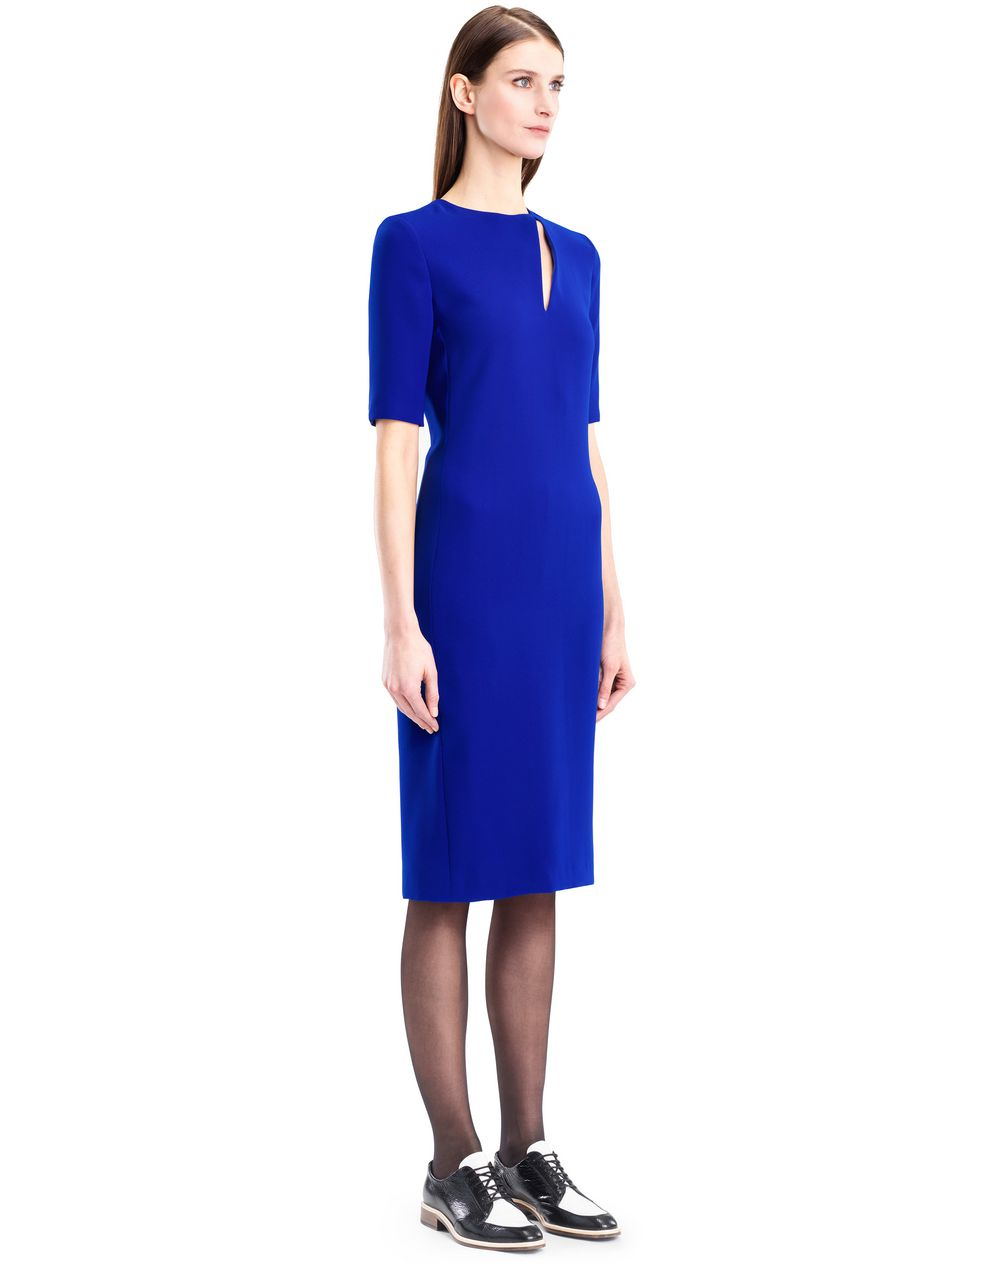 GITANE BLUE CADY DRESS - Lanvin